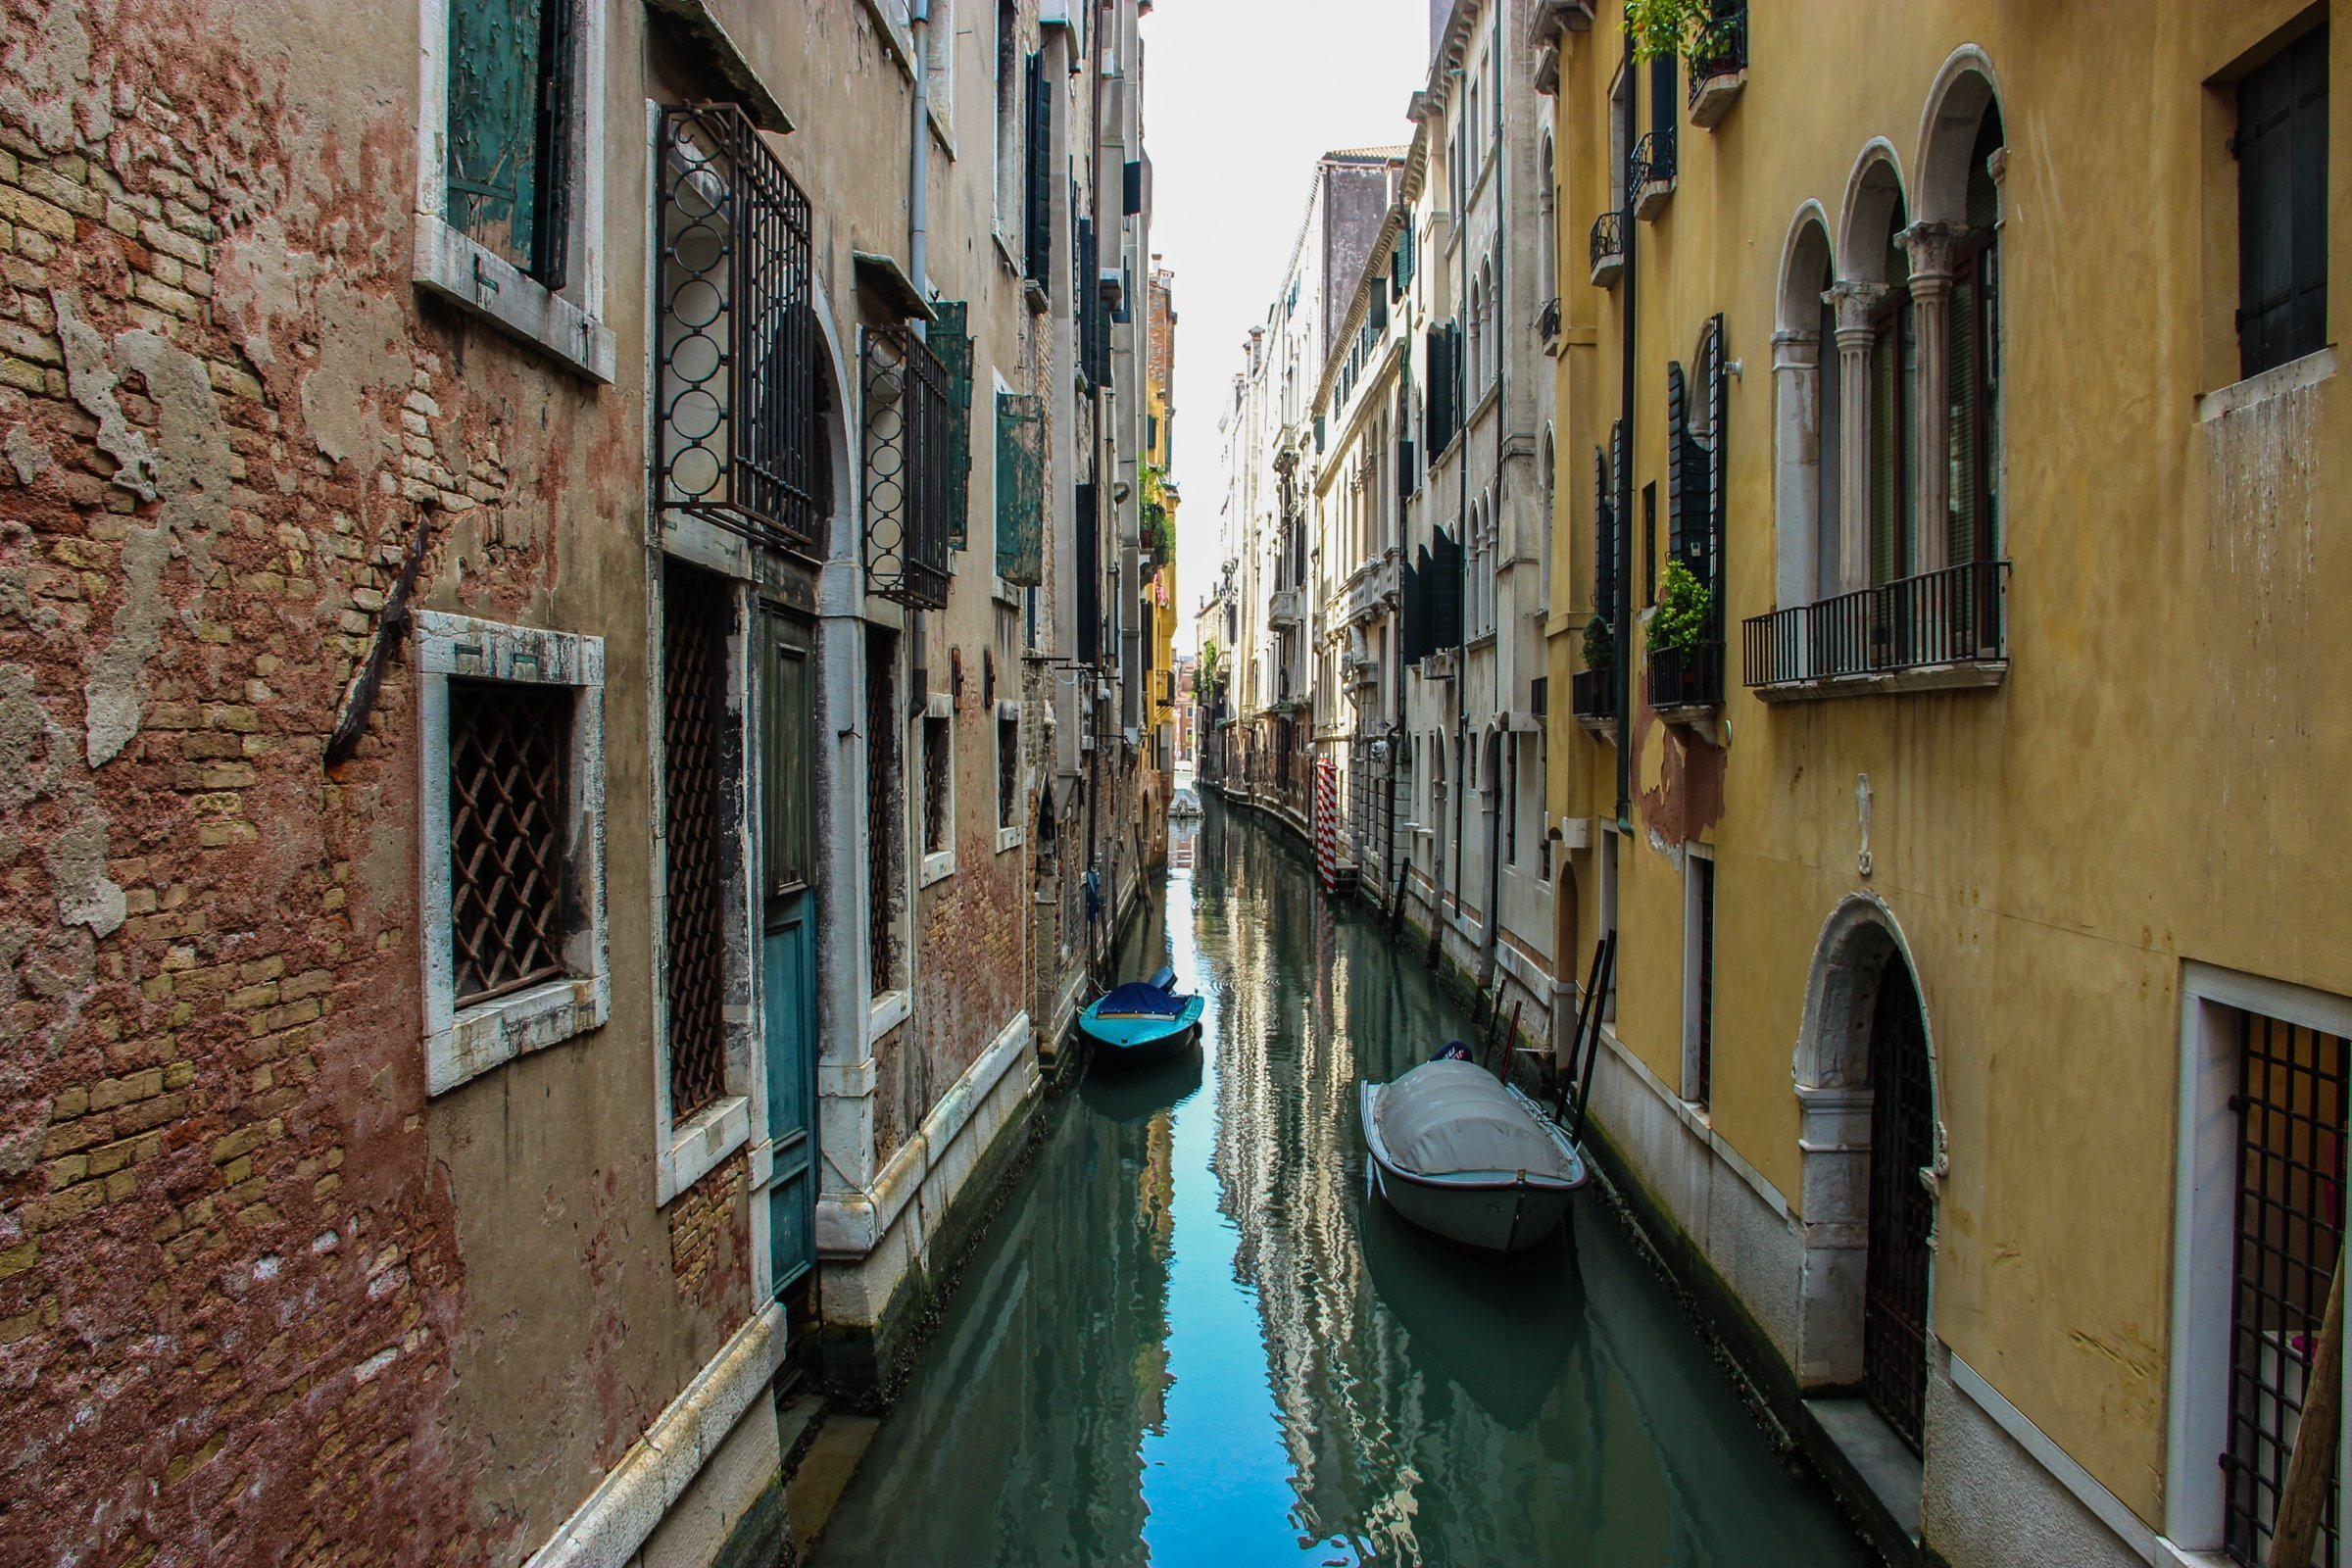 Boats Between Buildings In Narrow Canal